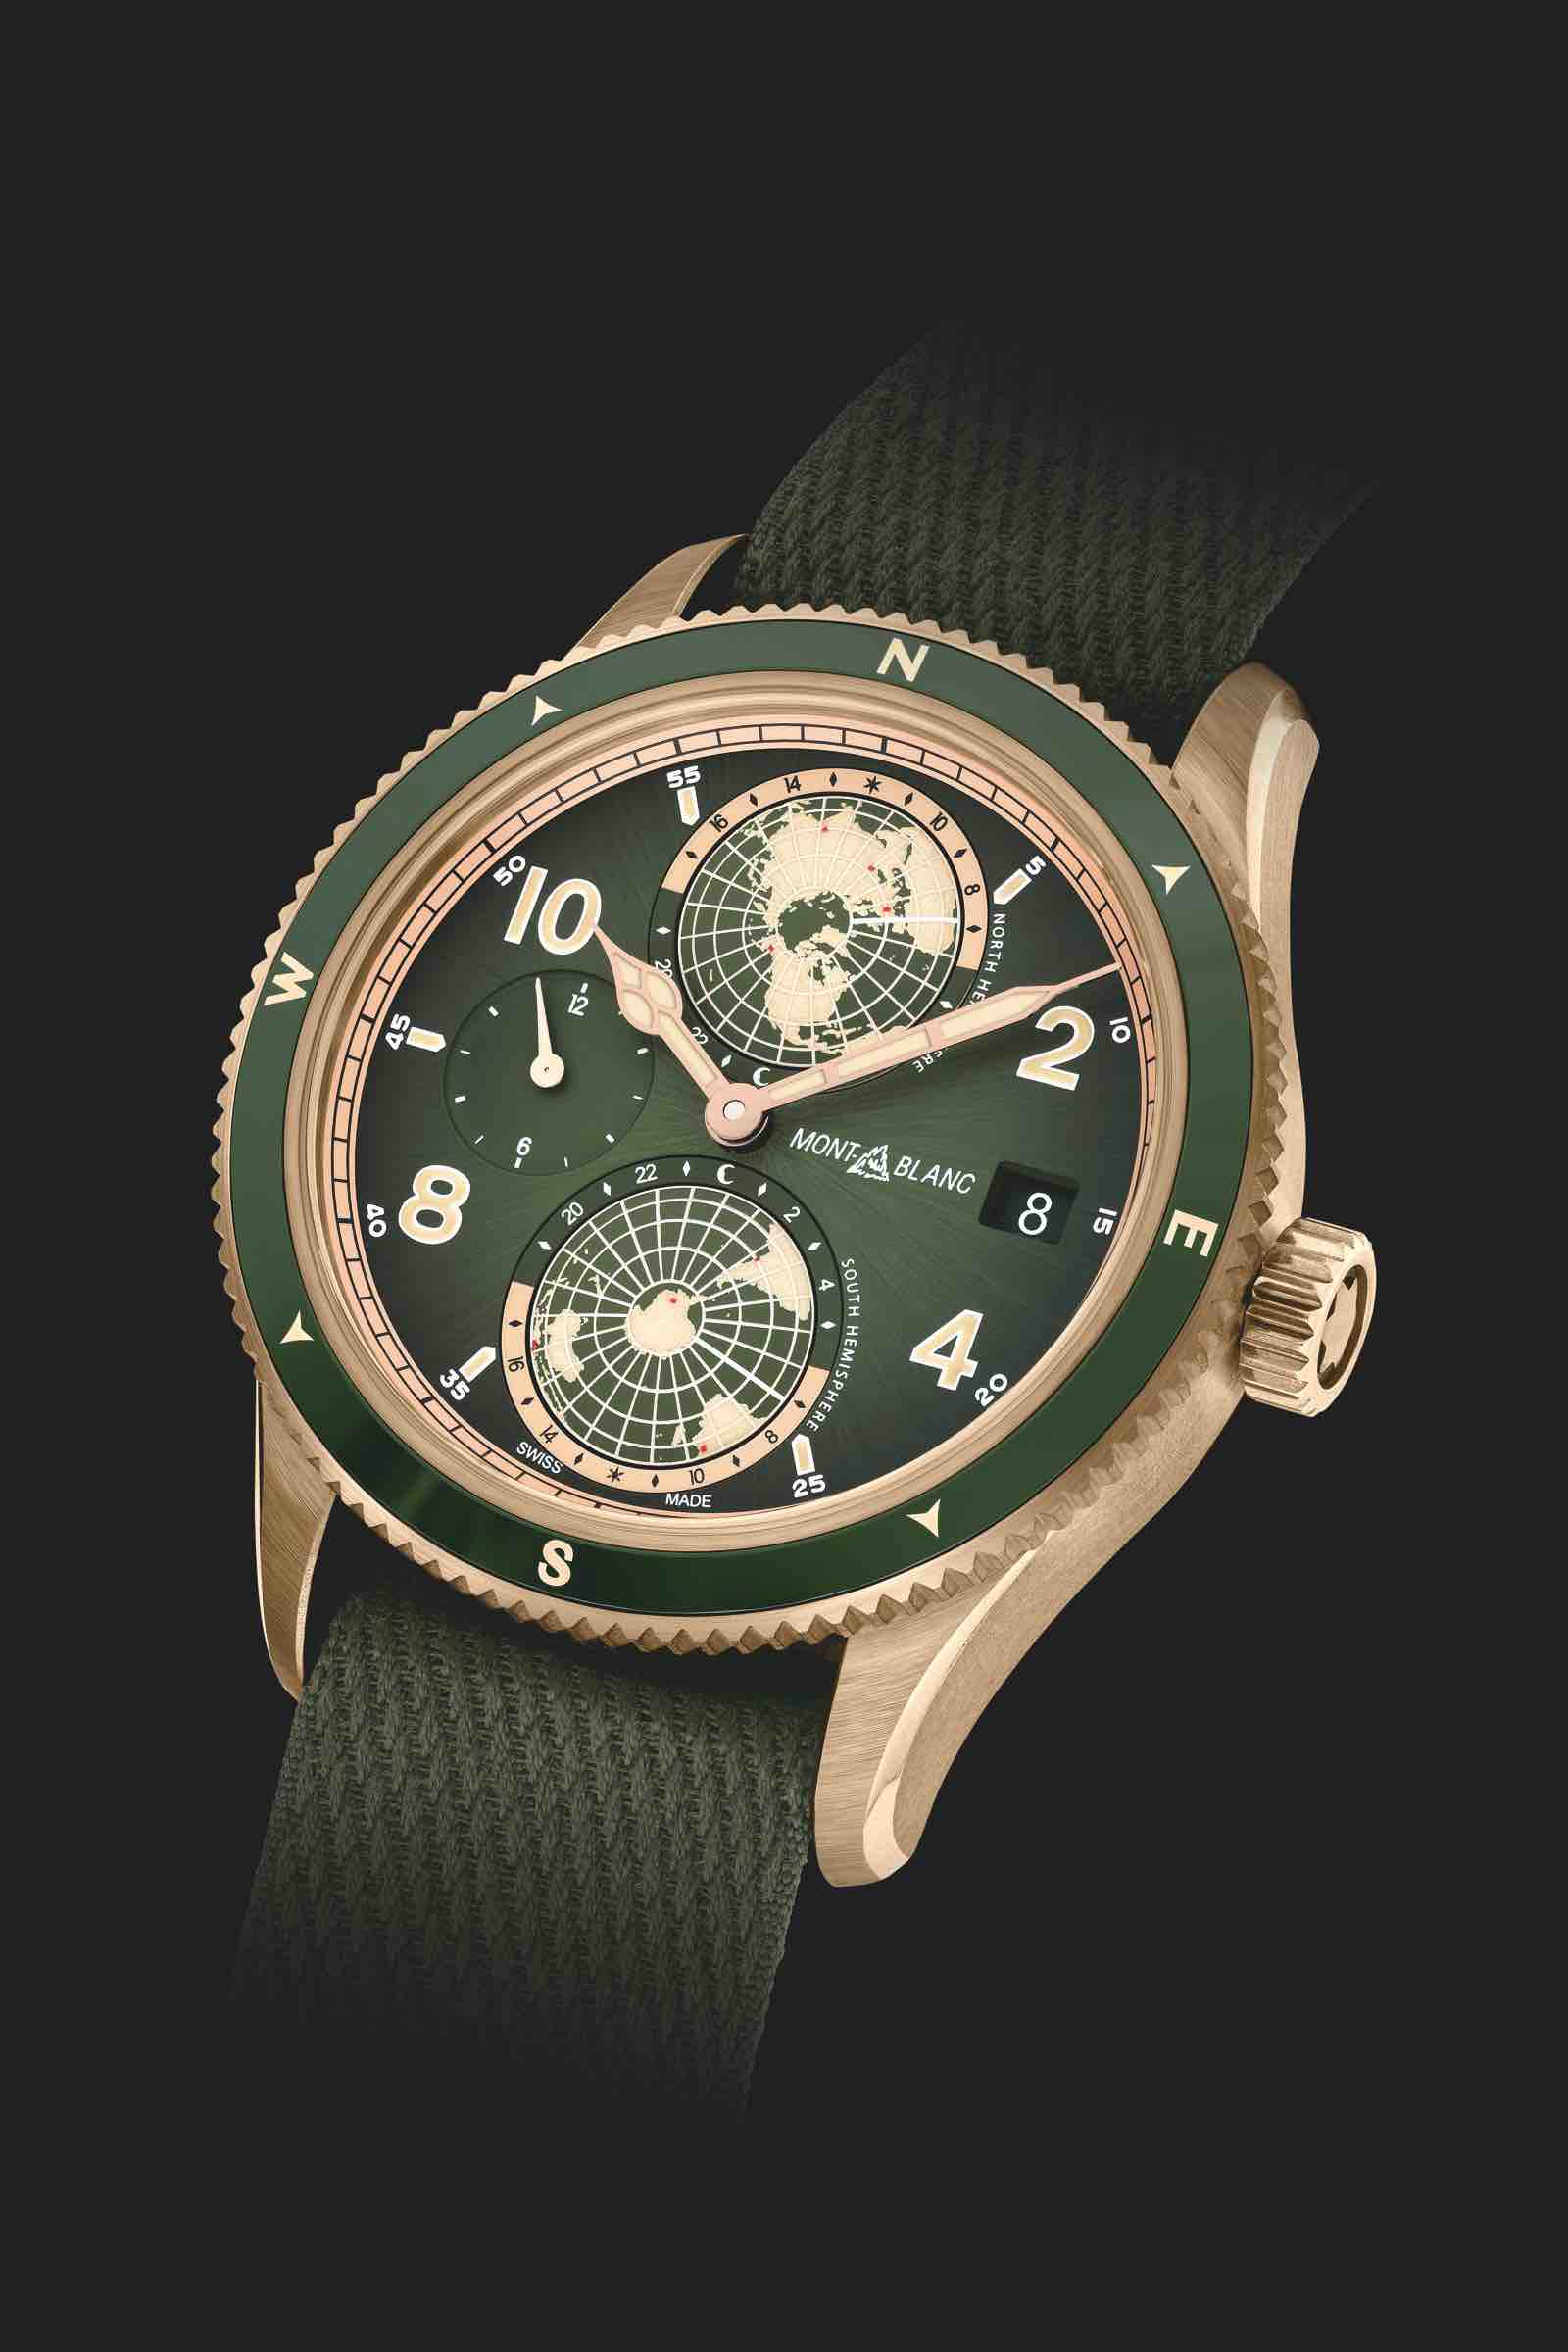 The new Montblanc Geosphere in green